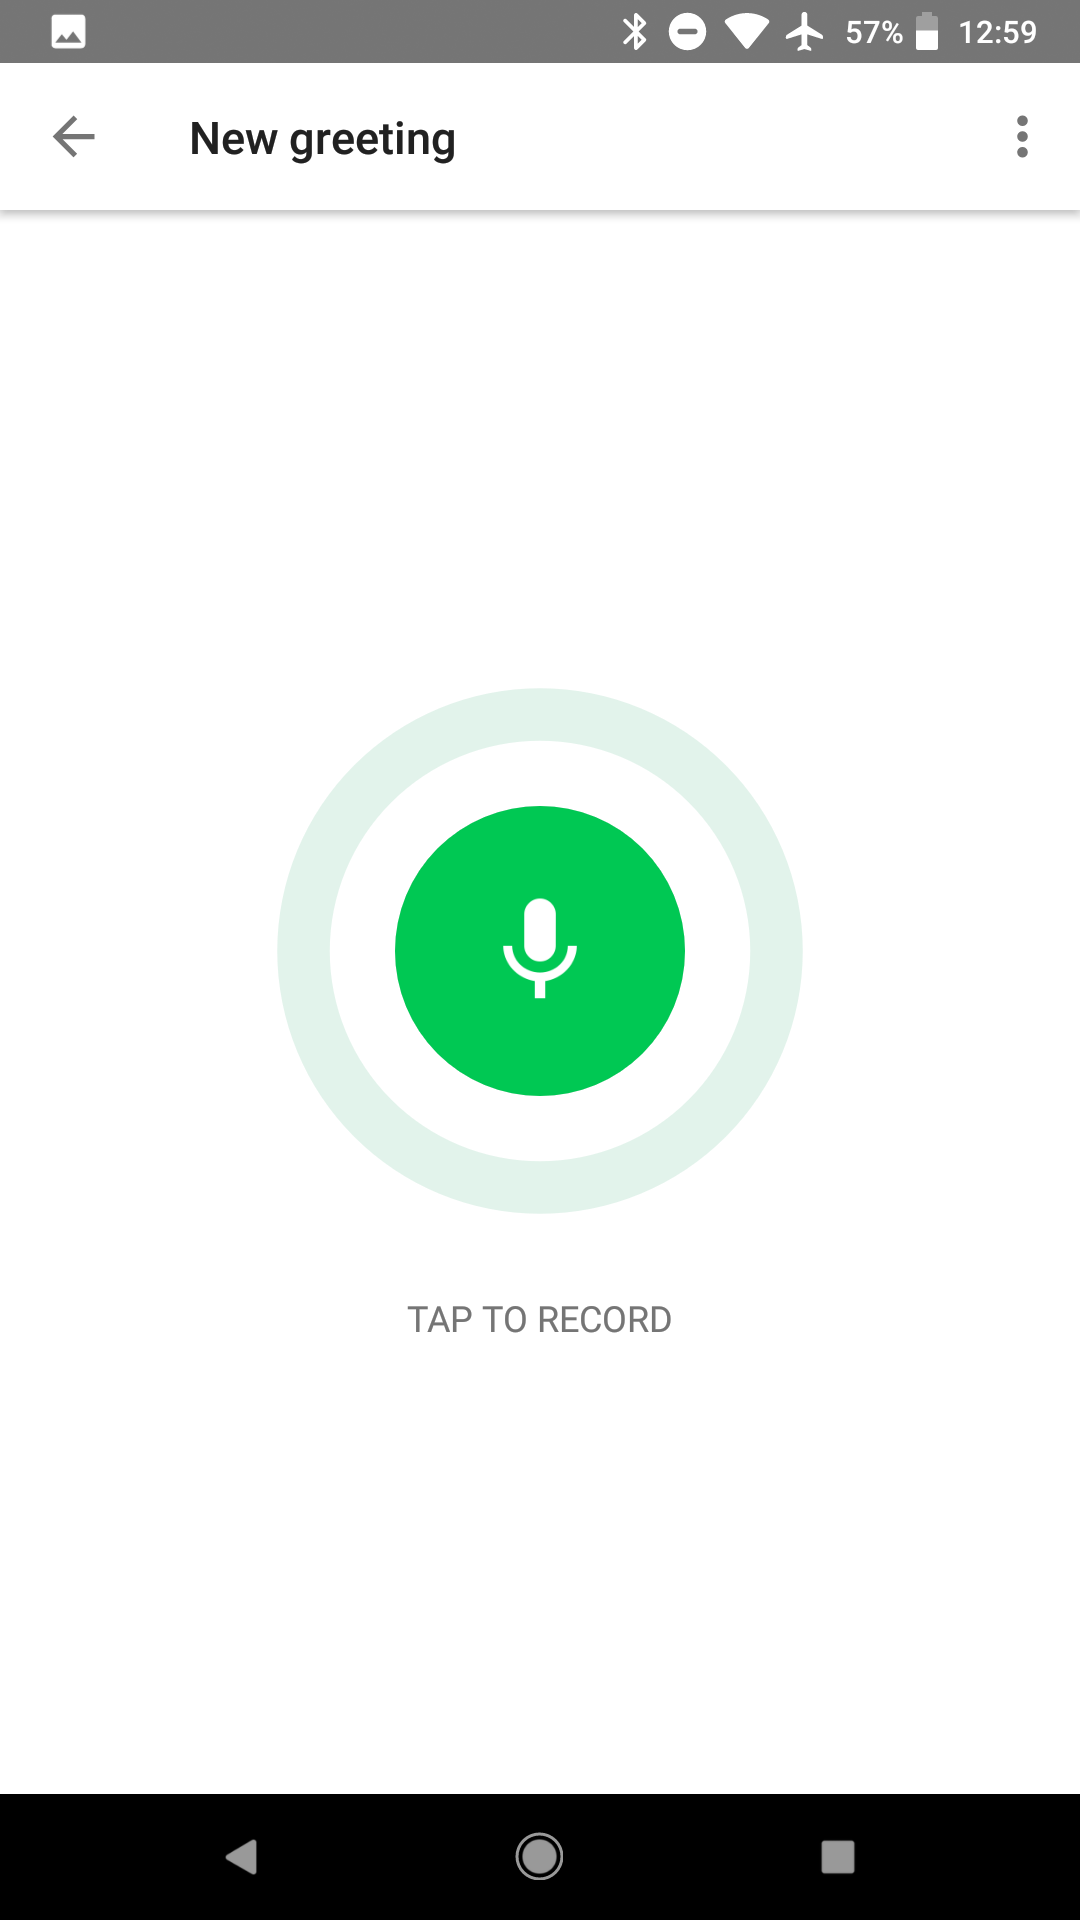 Google Voice Now Lets You Record Voicemail Greetings On Android And